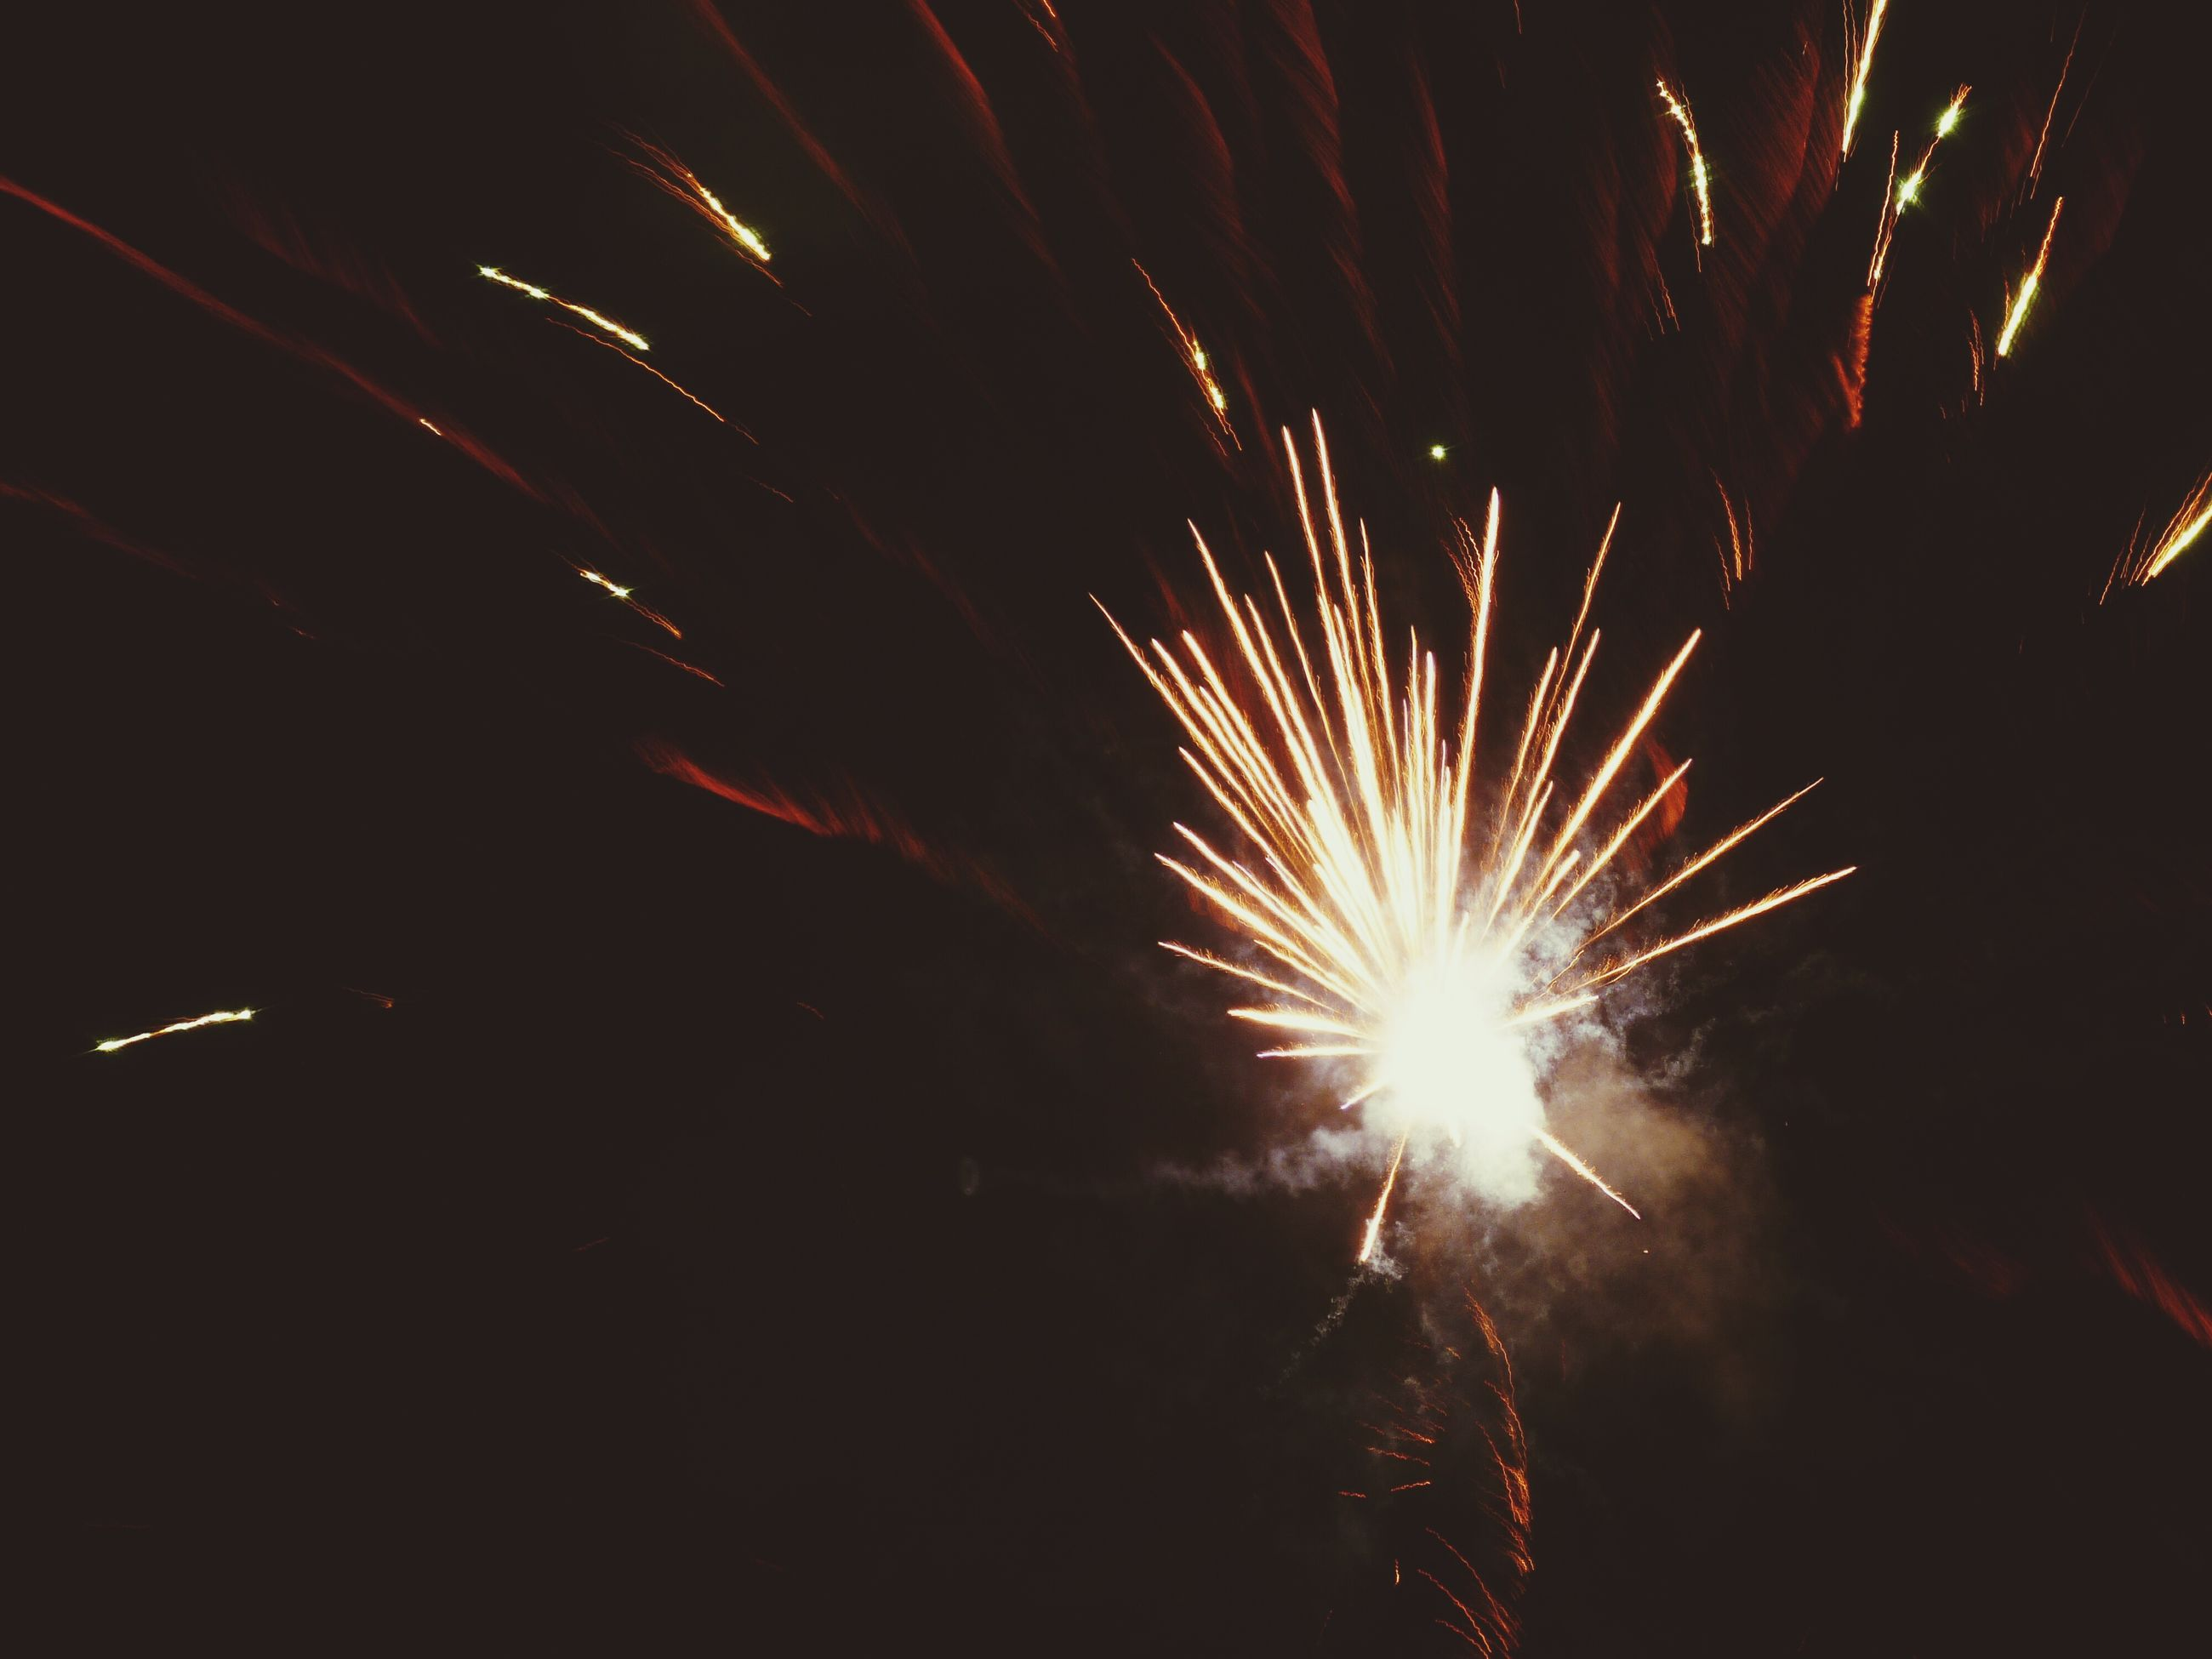 night, firework display, exploding, long exposure, illuminated, firework - man made object, glowing, celebration, sparks, motion, arts culture and entertainment, firework, low angle view, fire - natural phenomenon, event, blurred motion, entertainment, sky, smoke - physical structure, dark